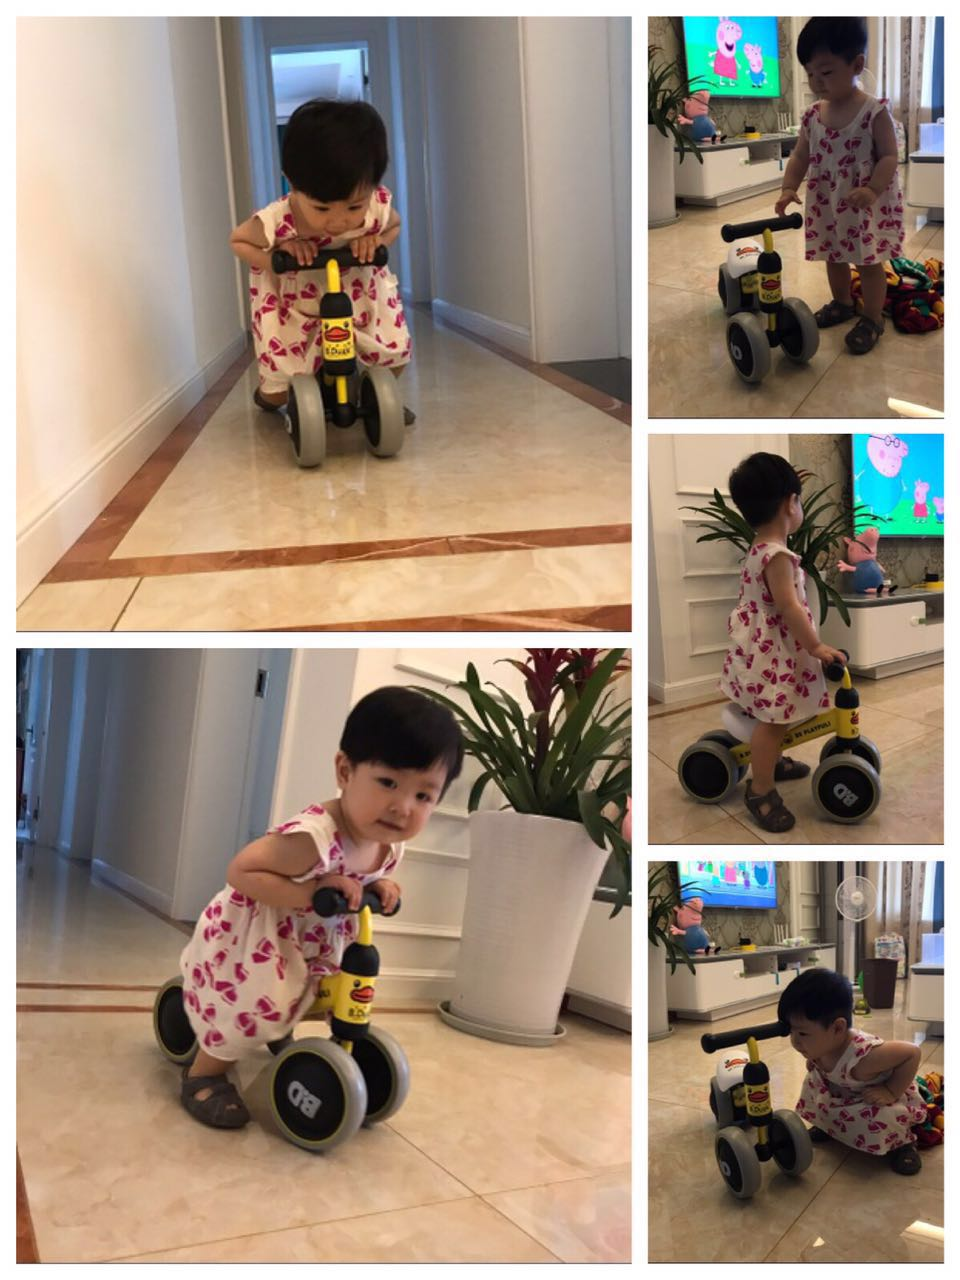 HTB11vO4lvBNTKJjSszcq6zO2VXal New brand children's bicycle balance scooter walker infant 1-3years Tricycle for driving bike gift for newborn Baby buggy